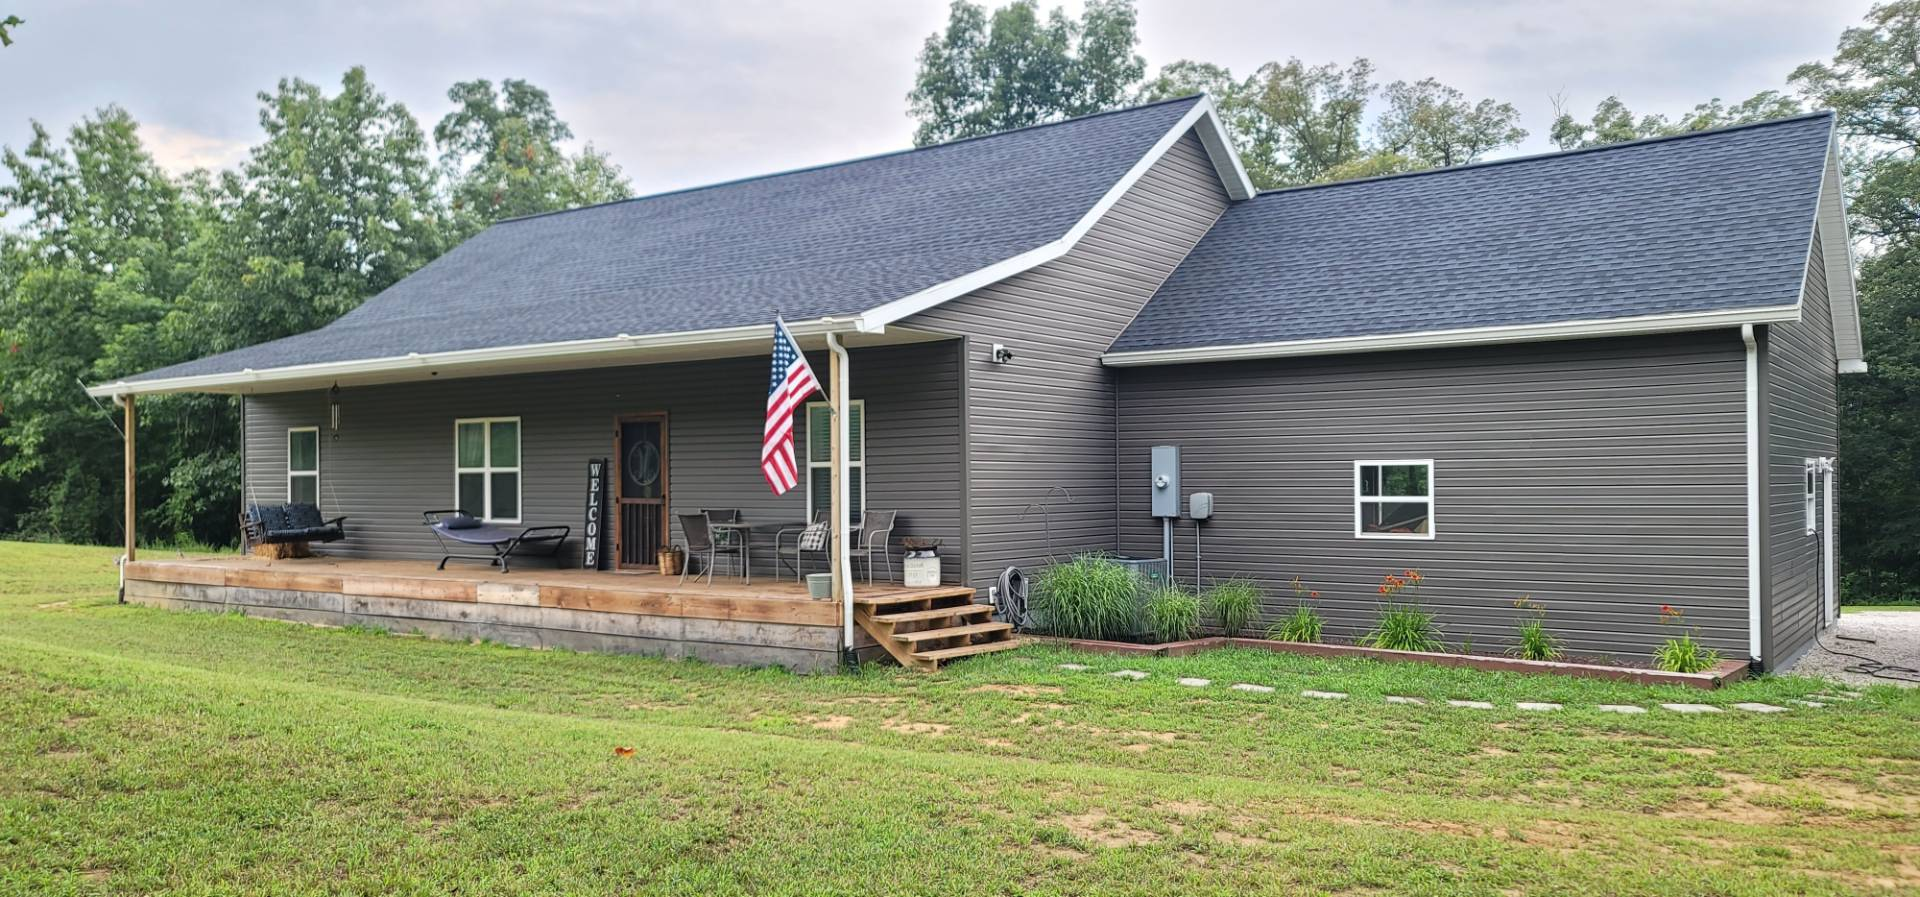 Newly Built Ranch Style Home on 18.6 acres